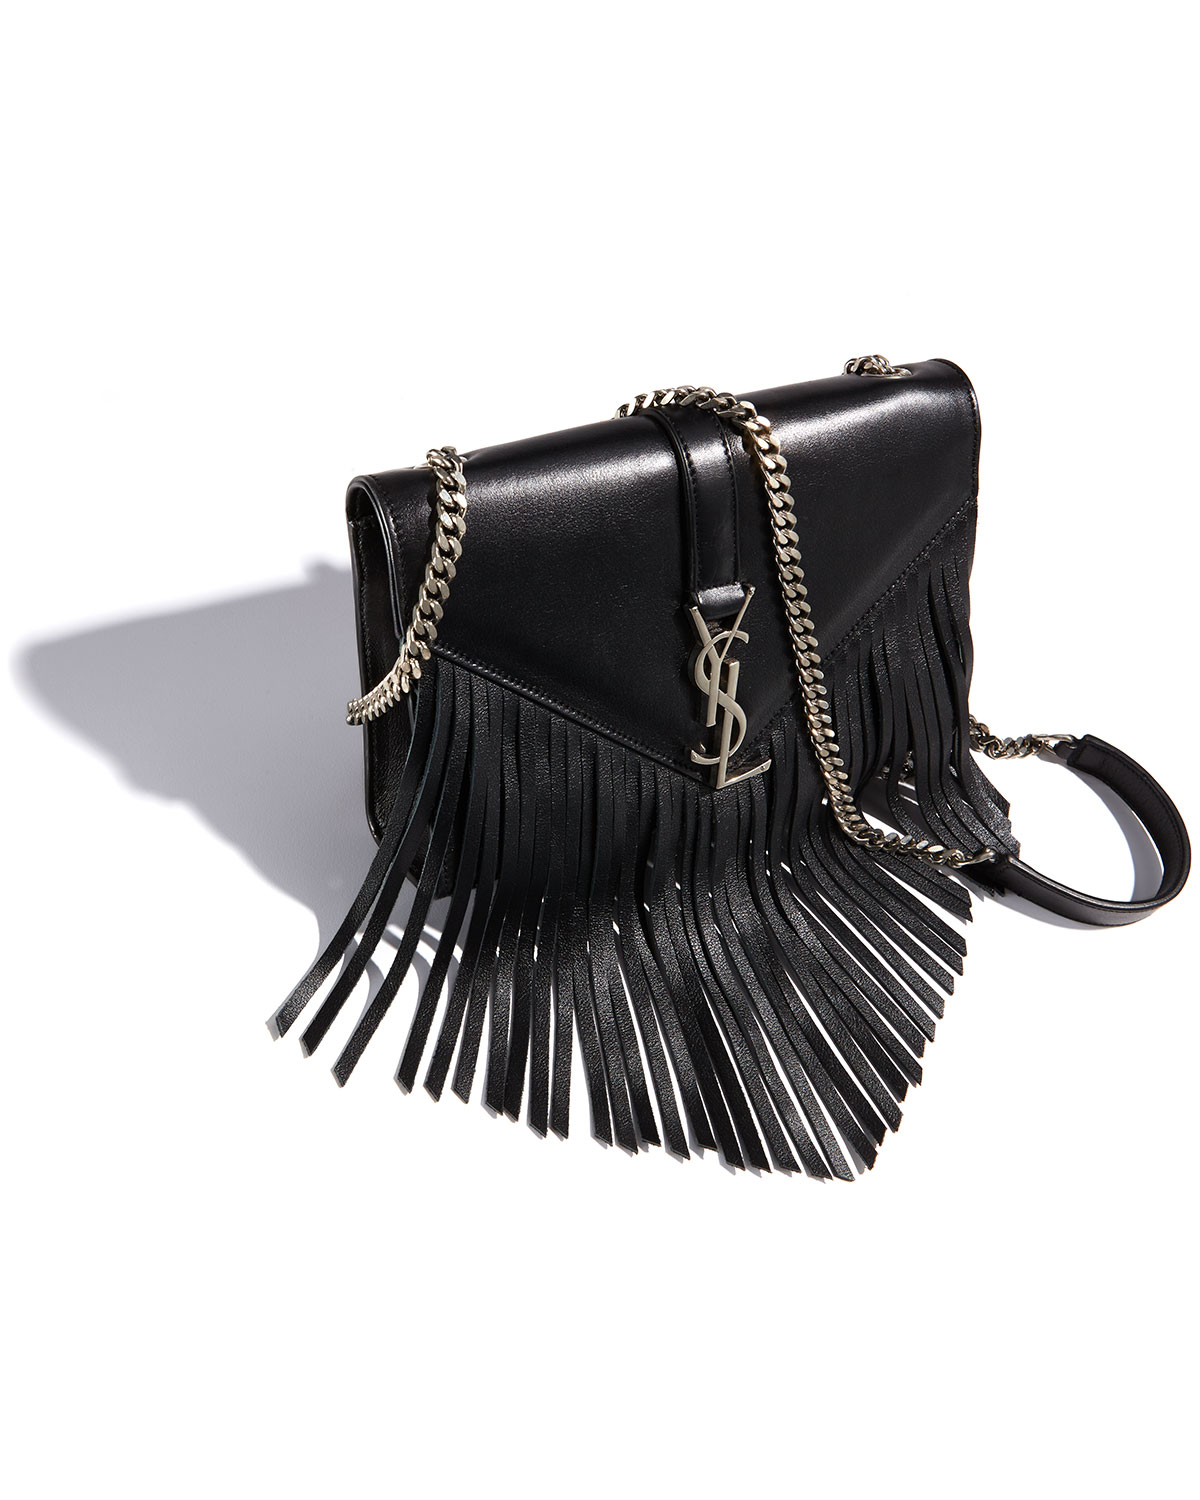 yves saint laurent purses sale - small monogram saint laurent fringed crossbody bag in black ...